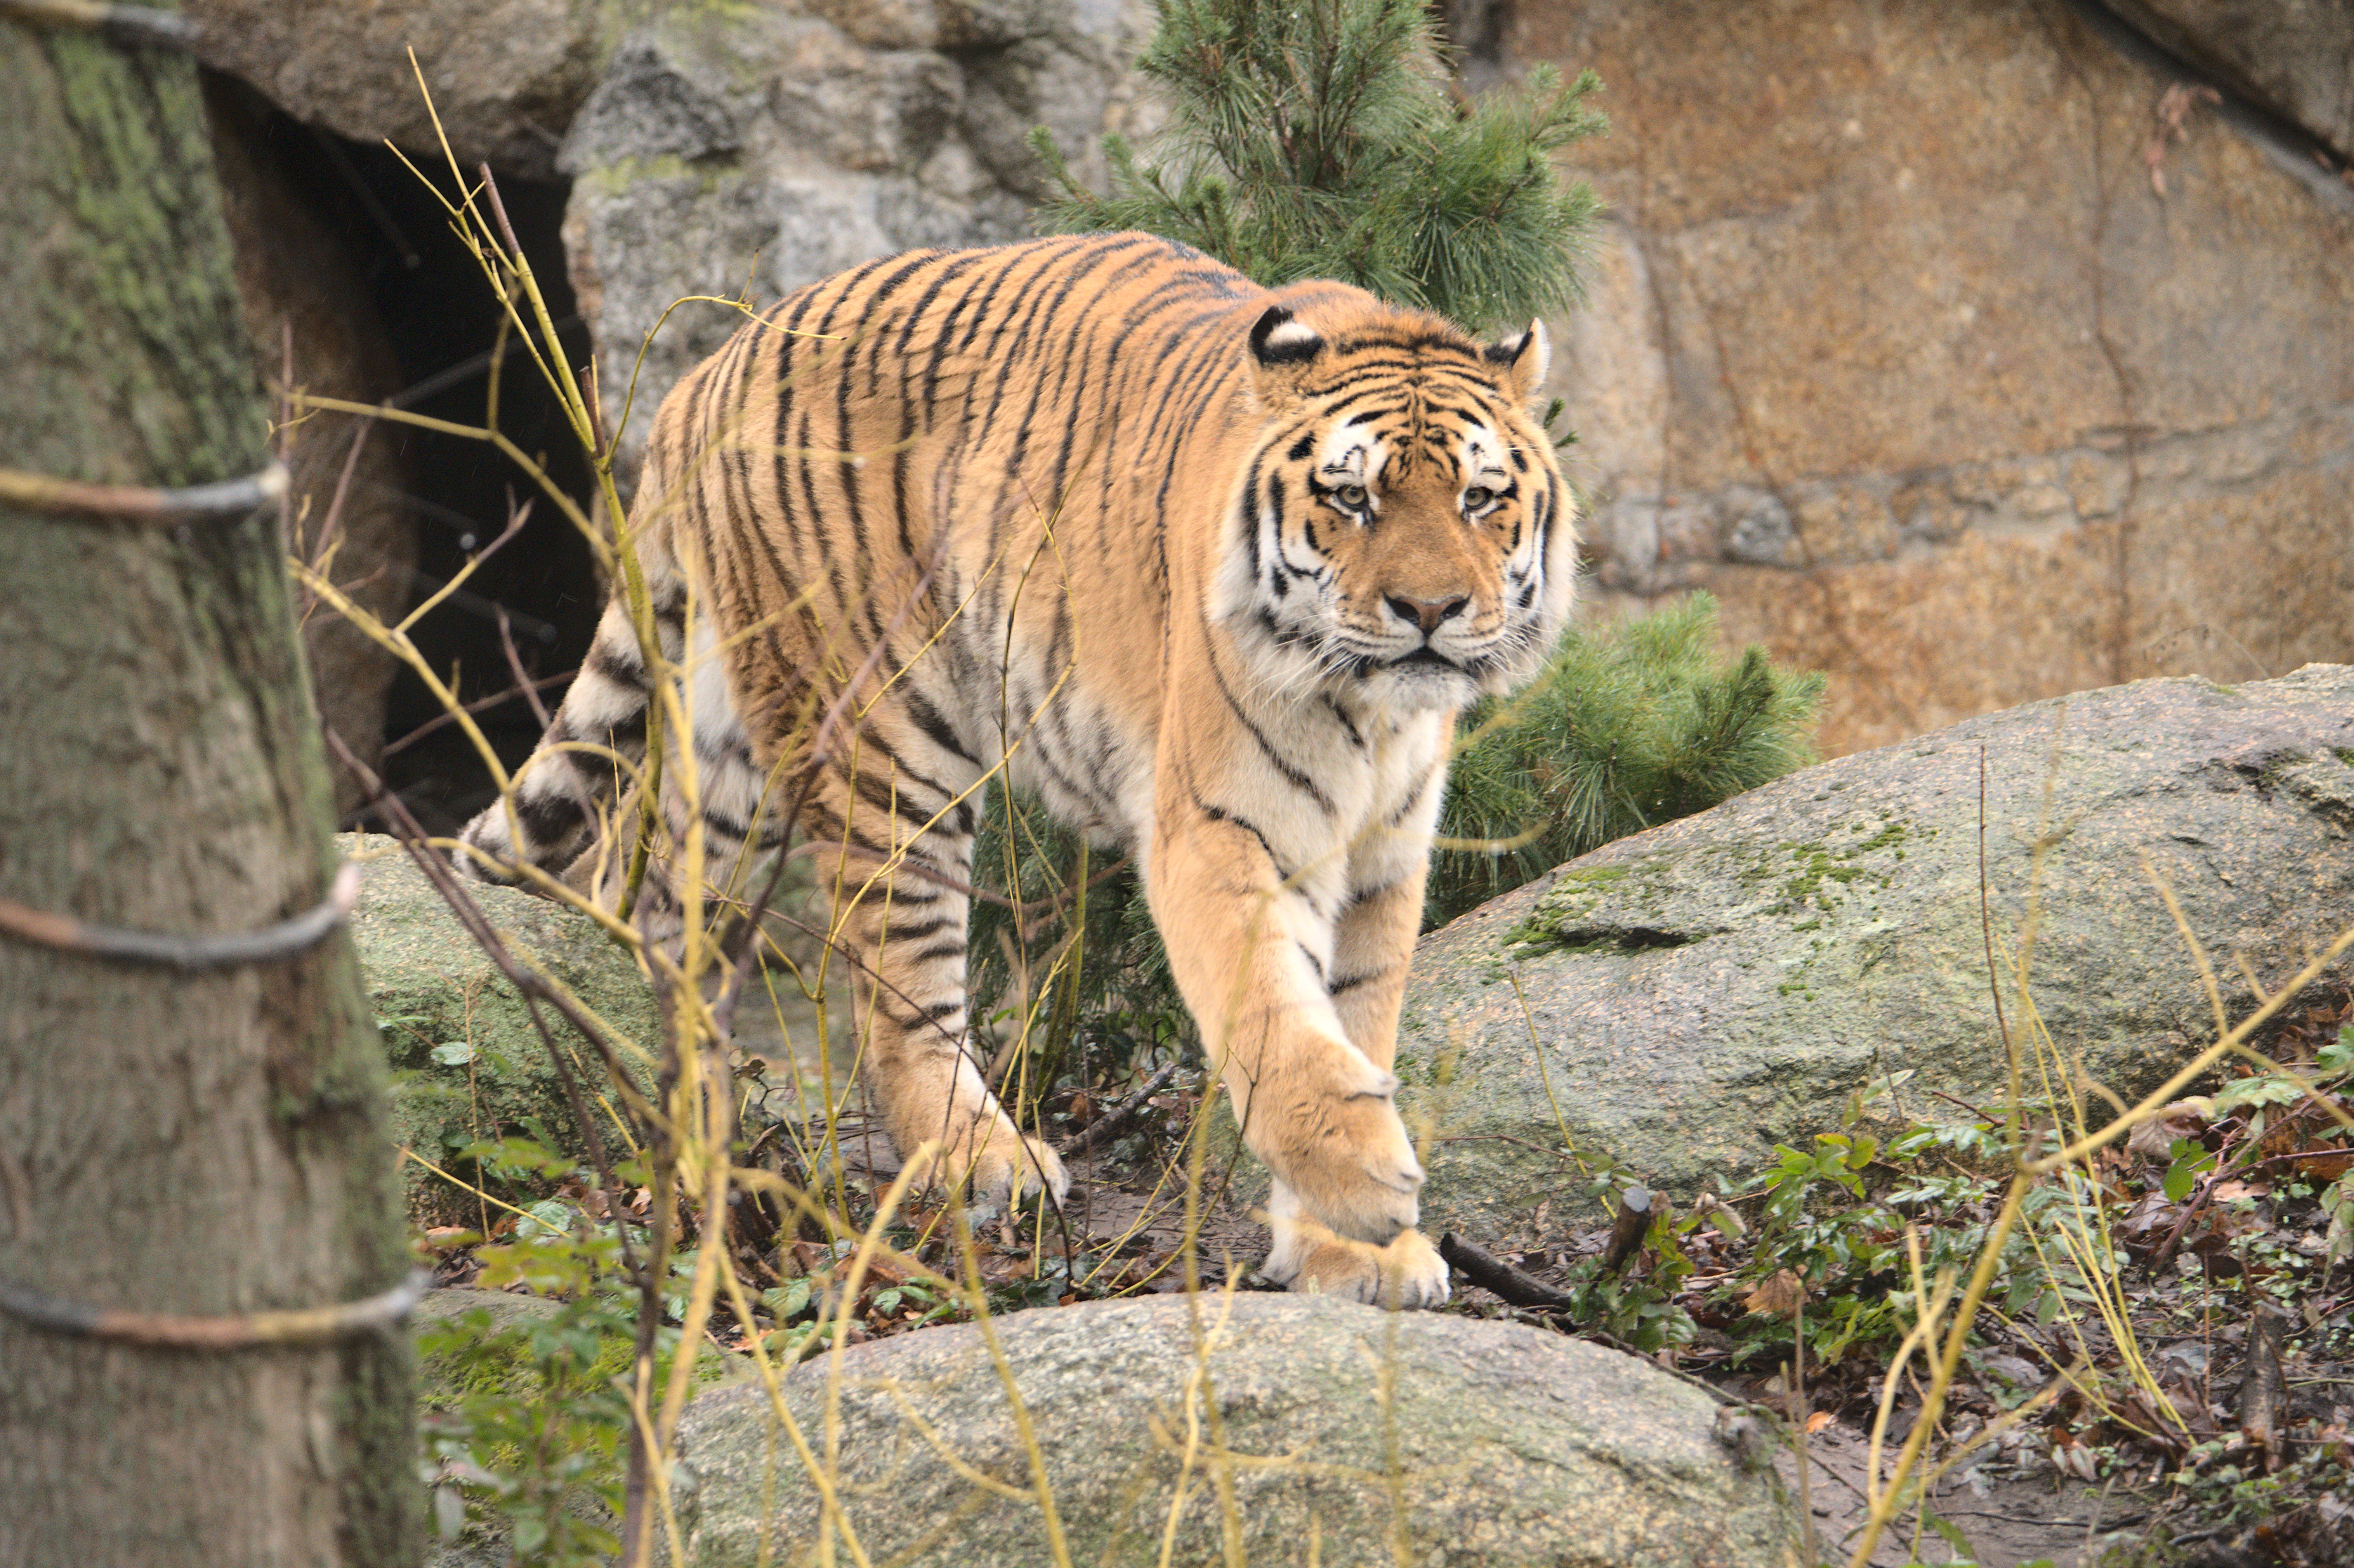 149503 download wallpaper Animals, Tiger, Animal, Predator, Big Cat, Wildlife screensavers and pictures for free